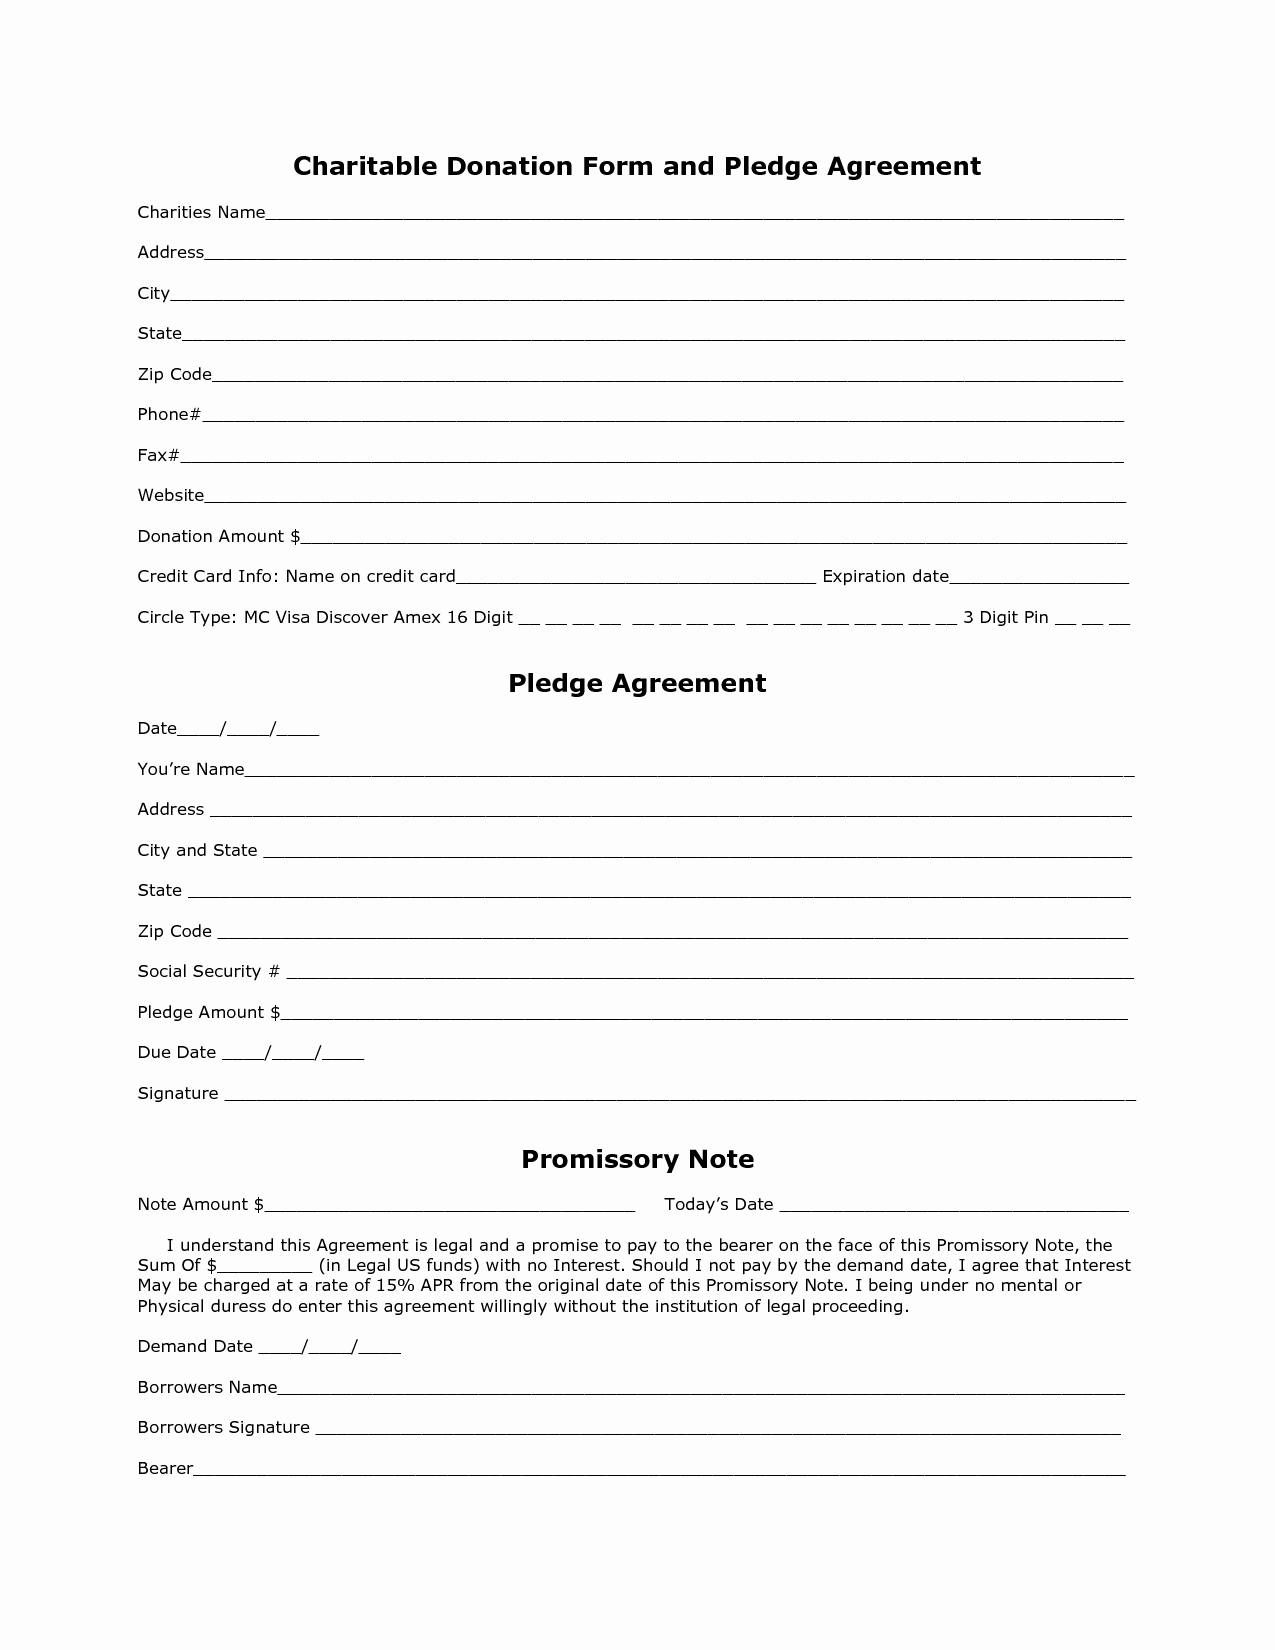 Charitable Donation form Template Best Of 10 Best S Of Blank Donation form Charitable